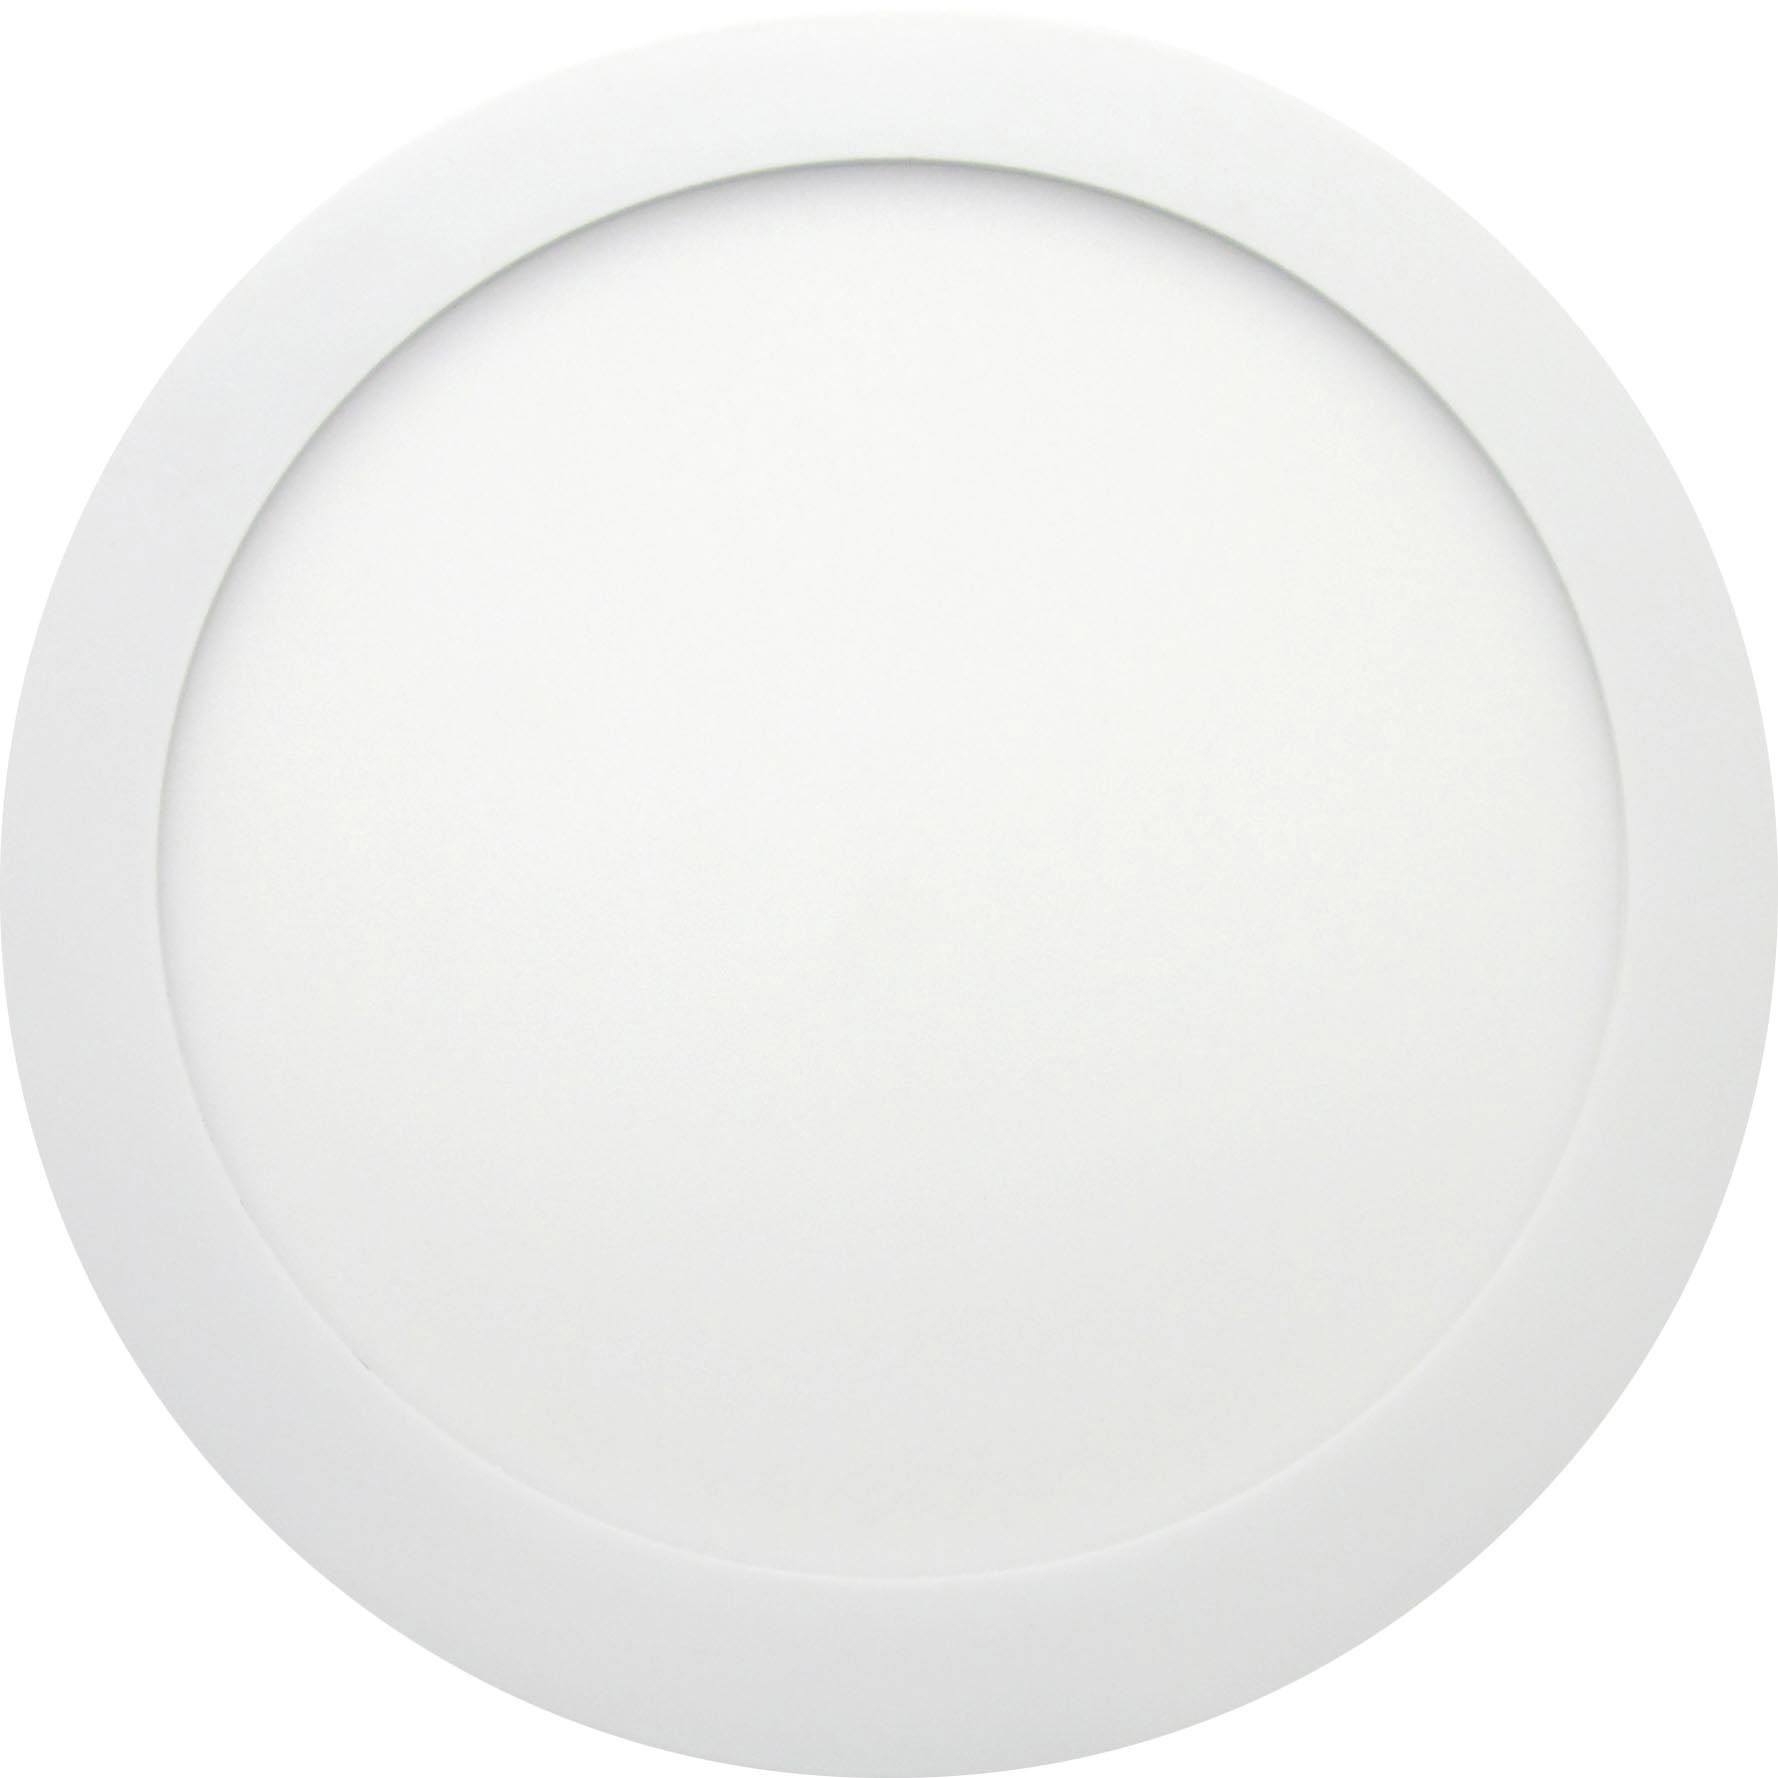 BL LED PANEL 240MM 18W 840 ROUND ND 50K NON DIMMABLE ARIAL